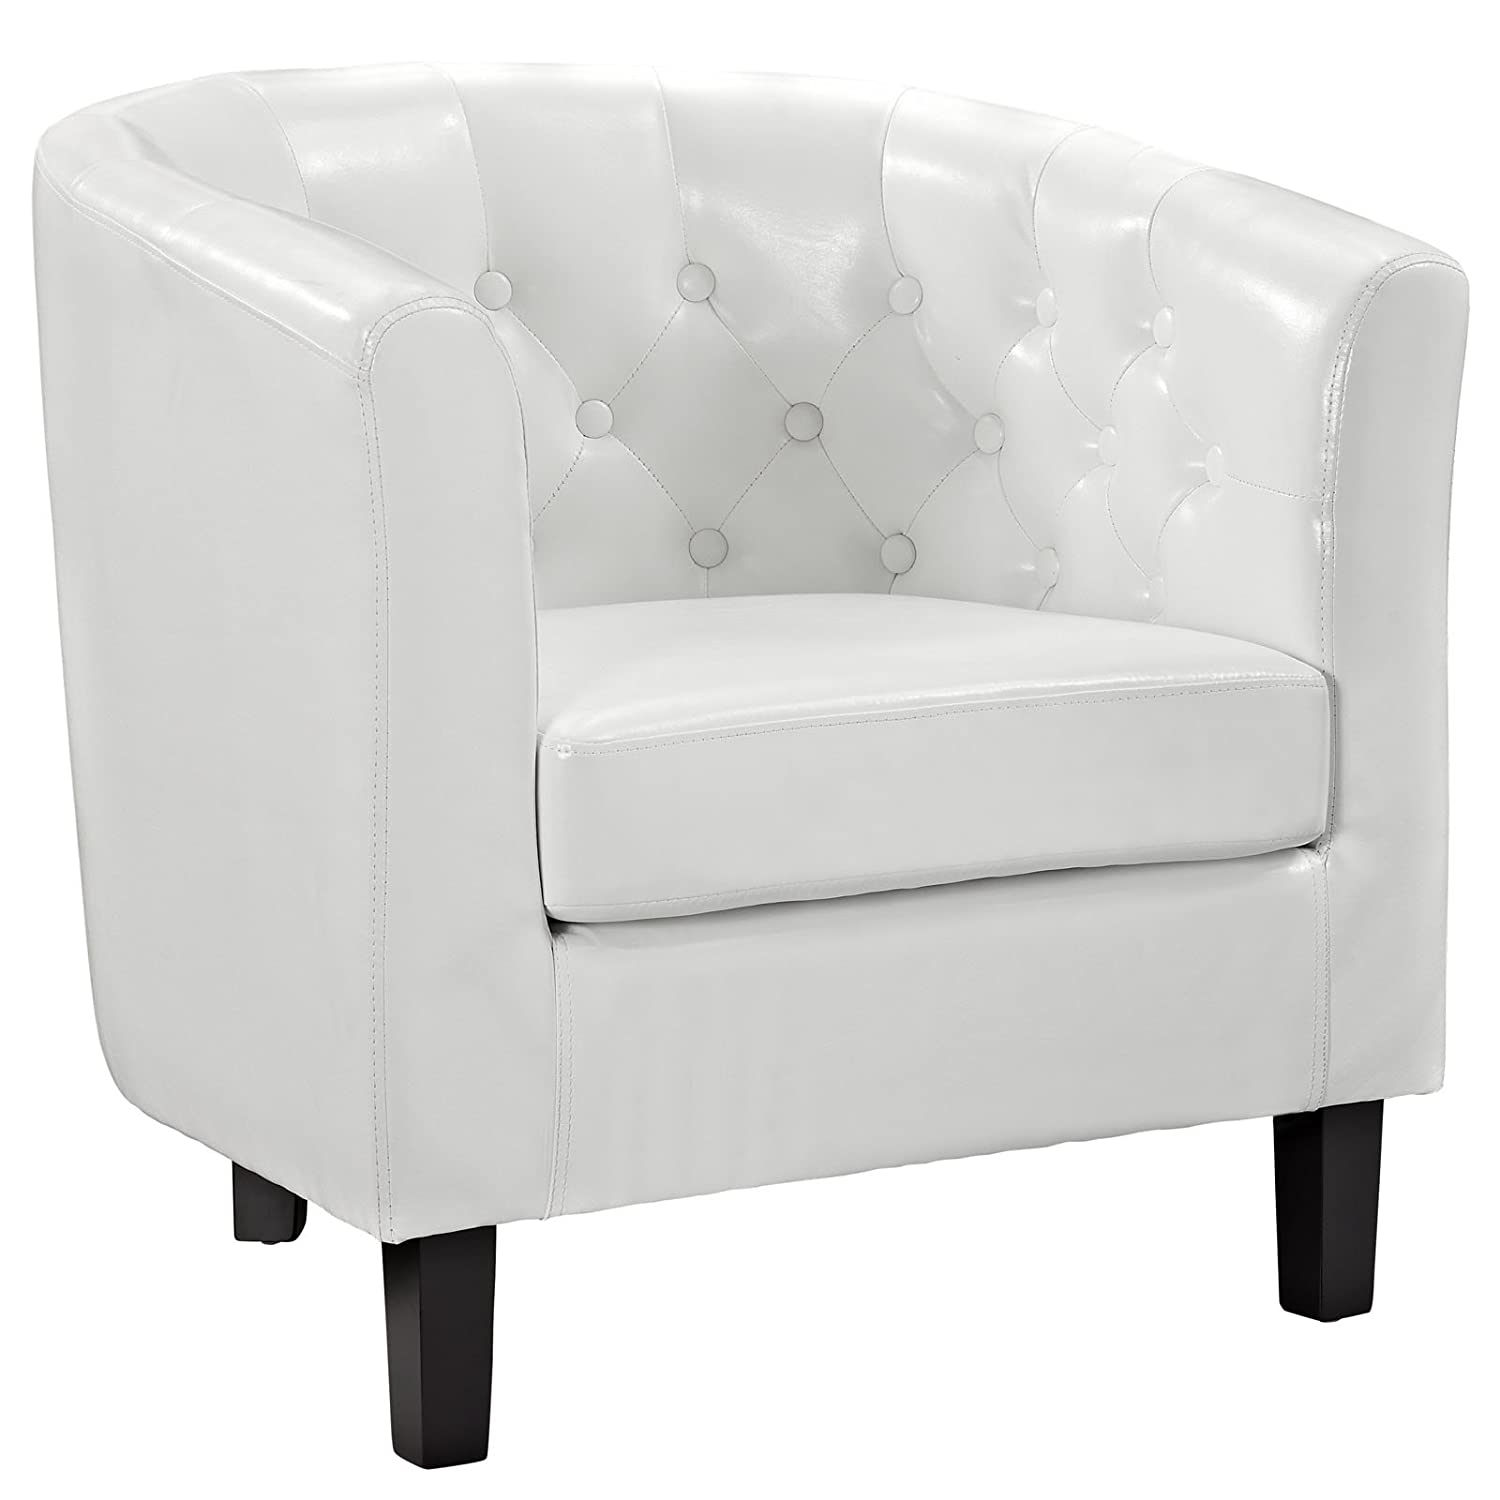 Awesome Amazon.com: Modway Prospect Upholstered Contemporary Modern Armchair In  White Faux Leather: Kitchen U0026 Dining